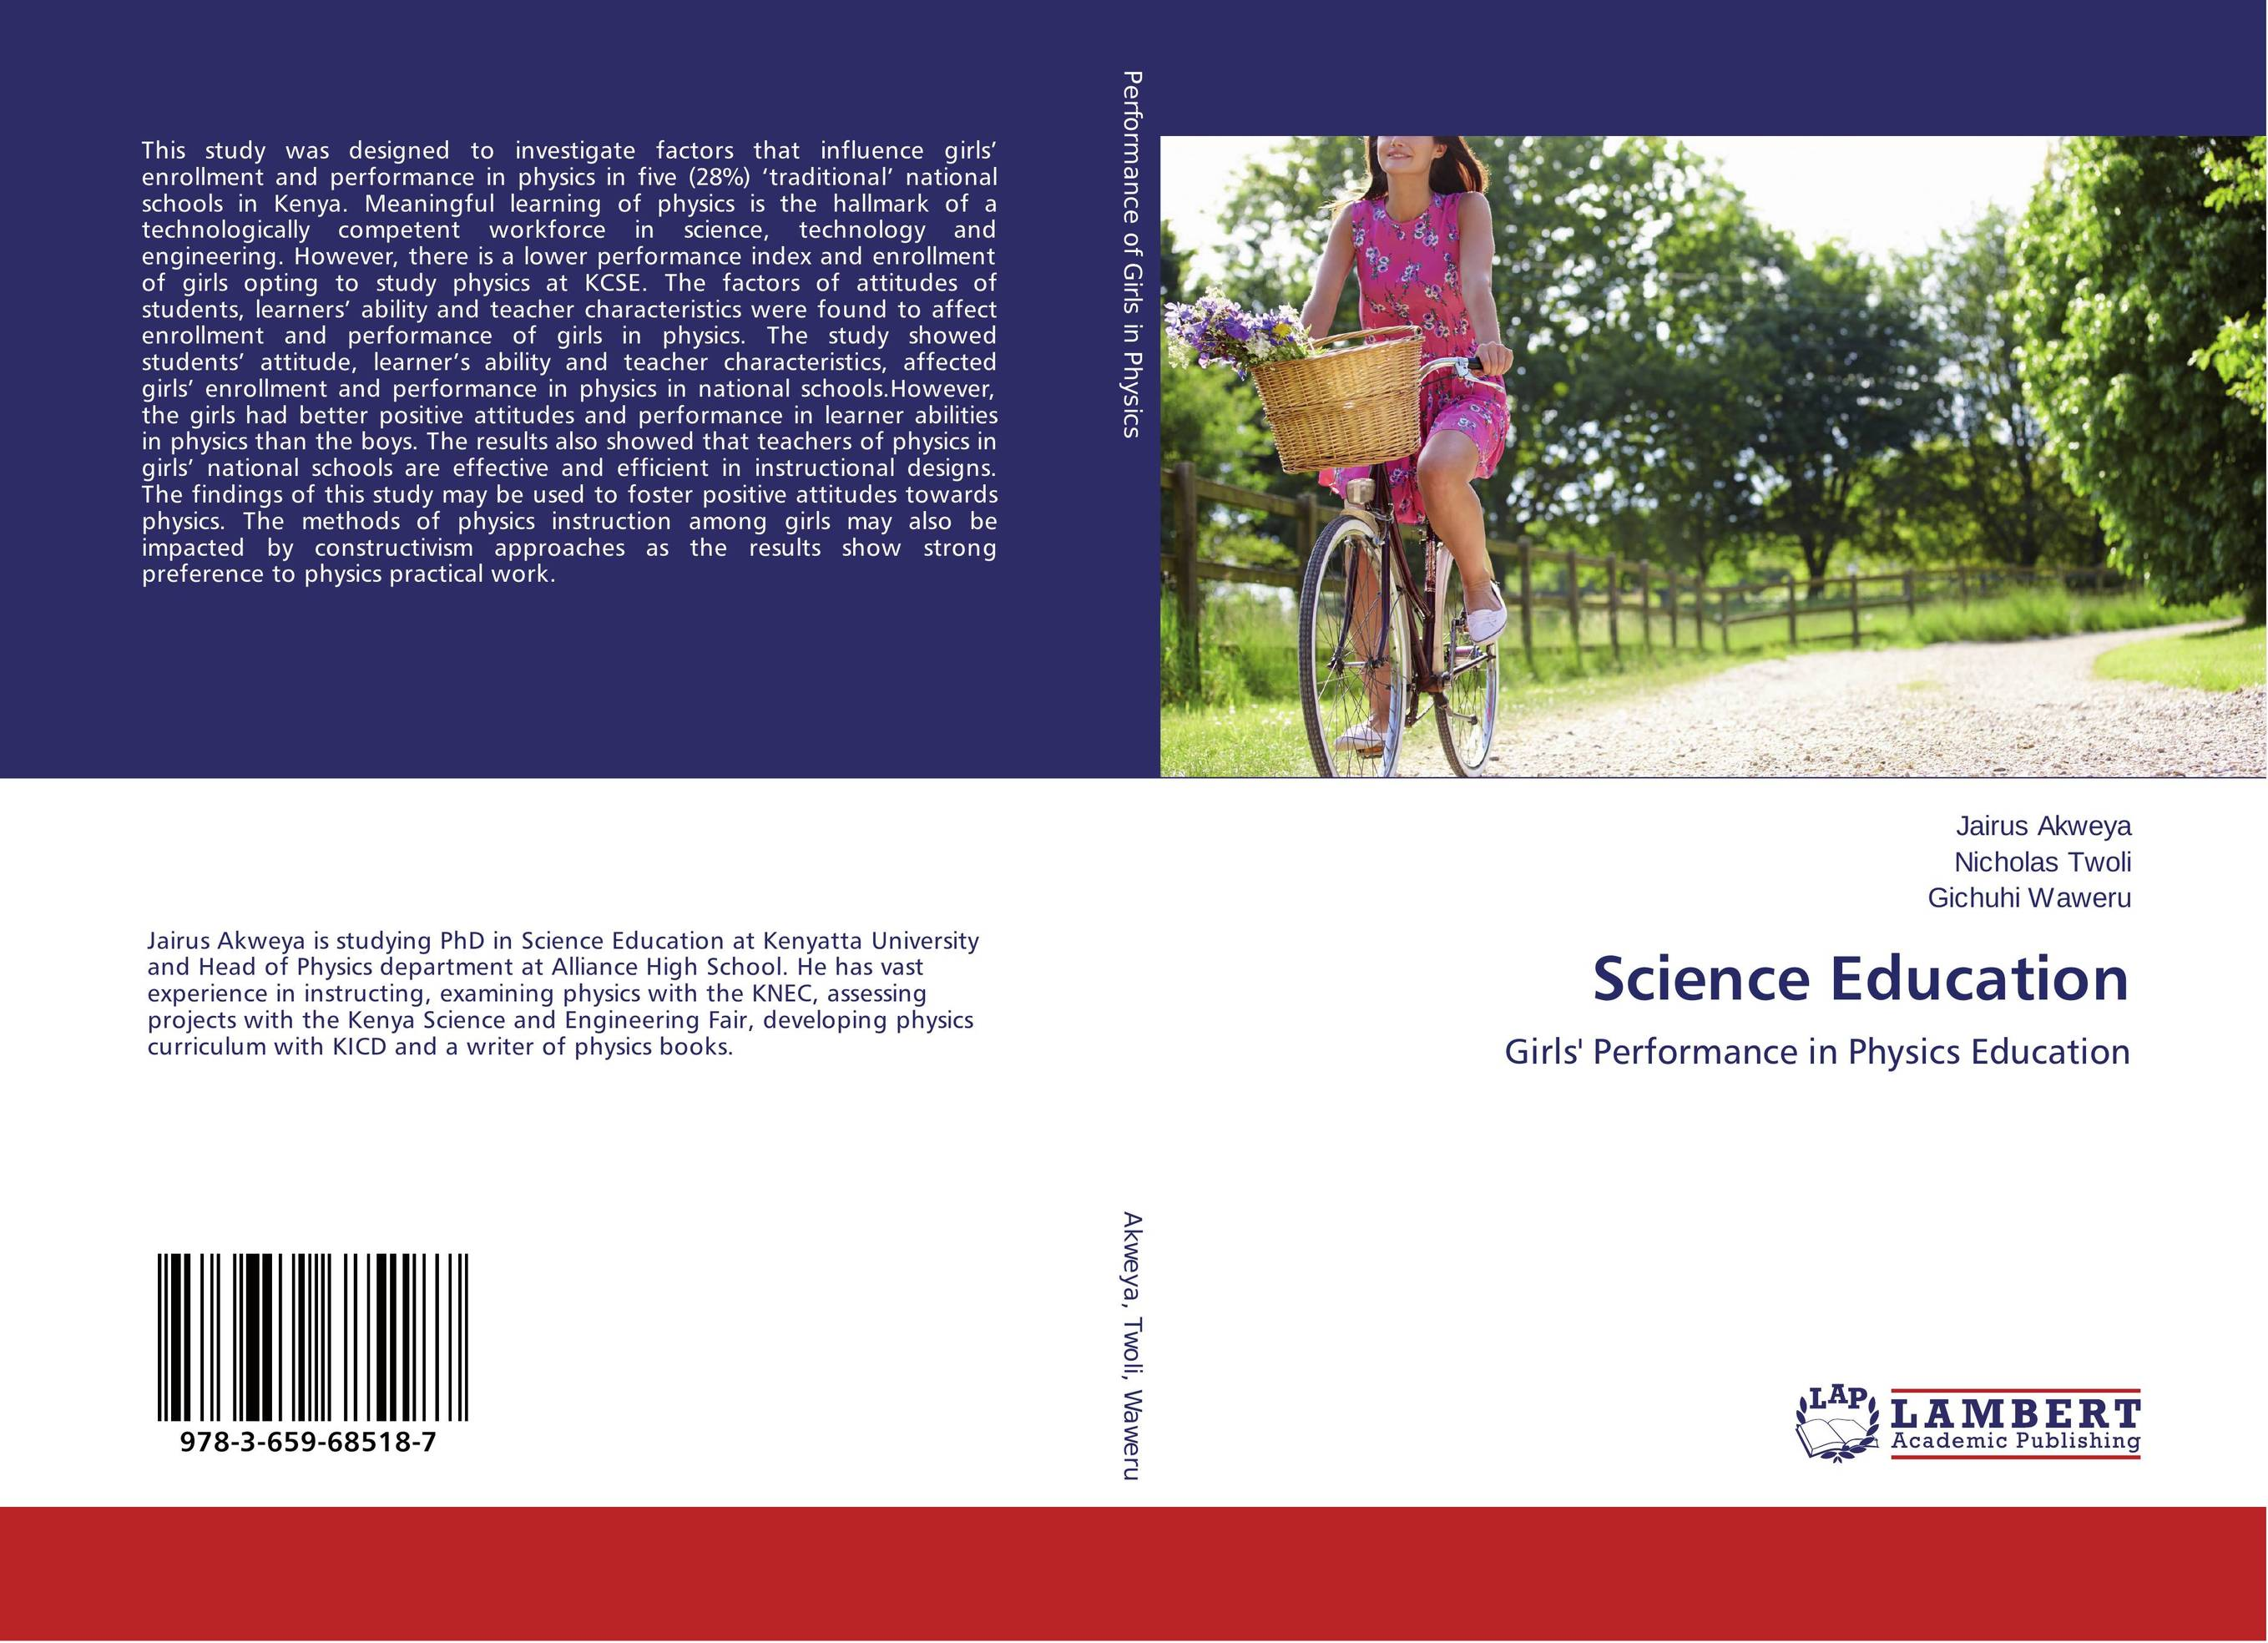 Science Education factors influencing girls performance in tanzanian community schools